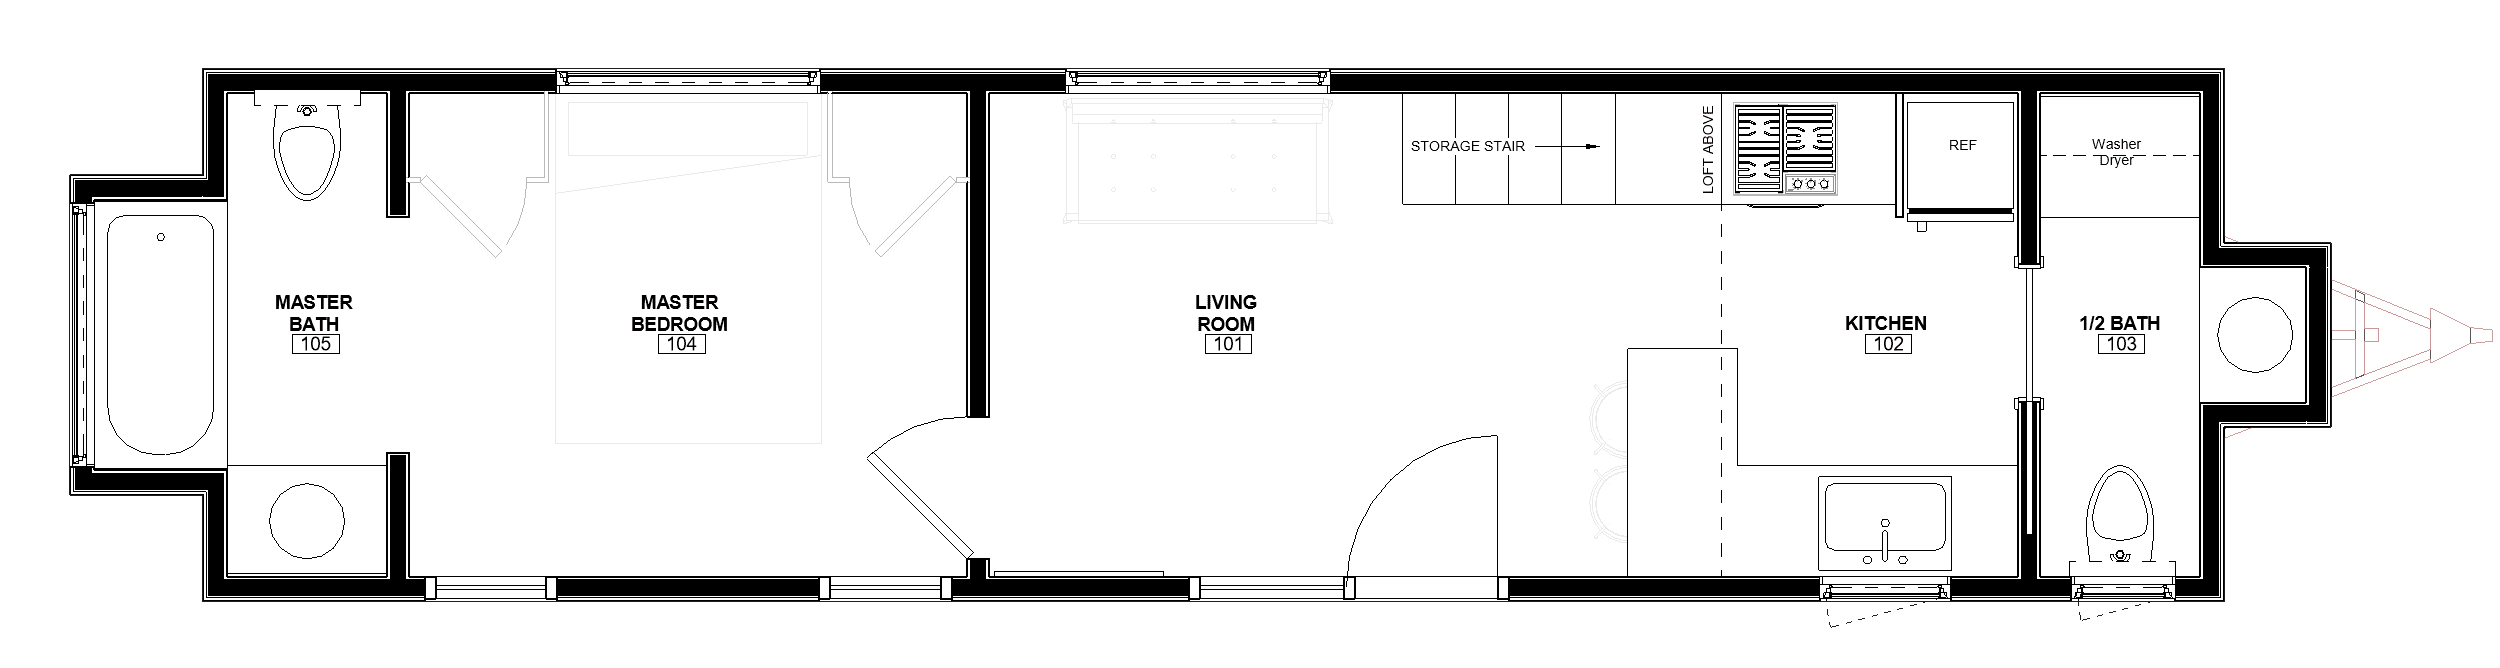 38ft Master on Main The Rutledge floor plan